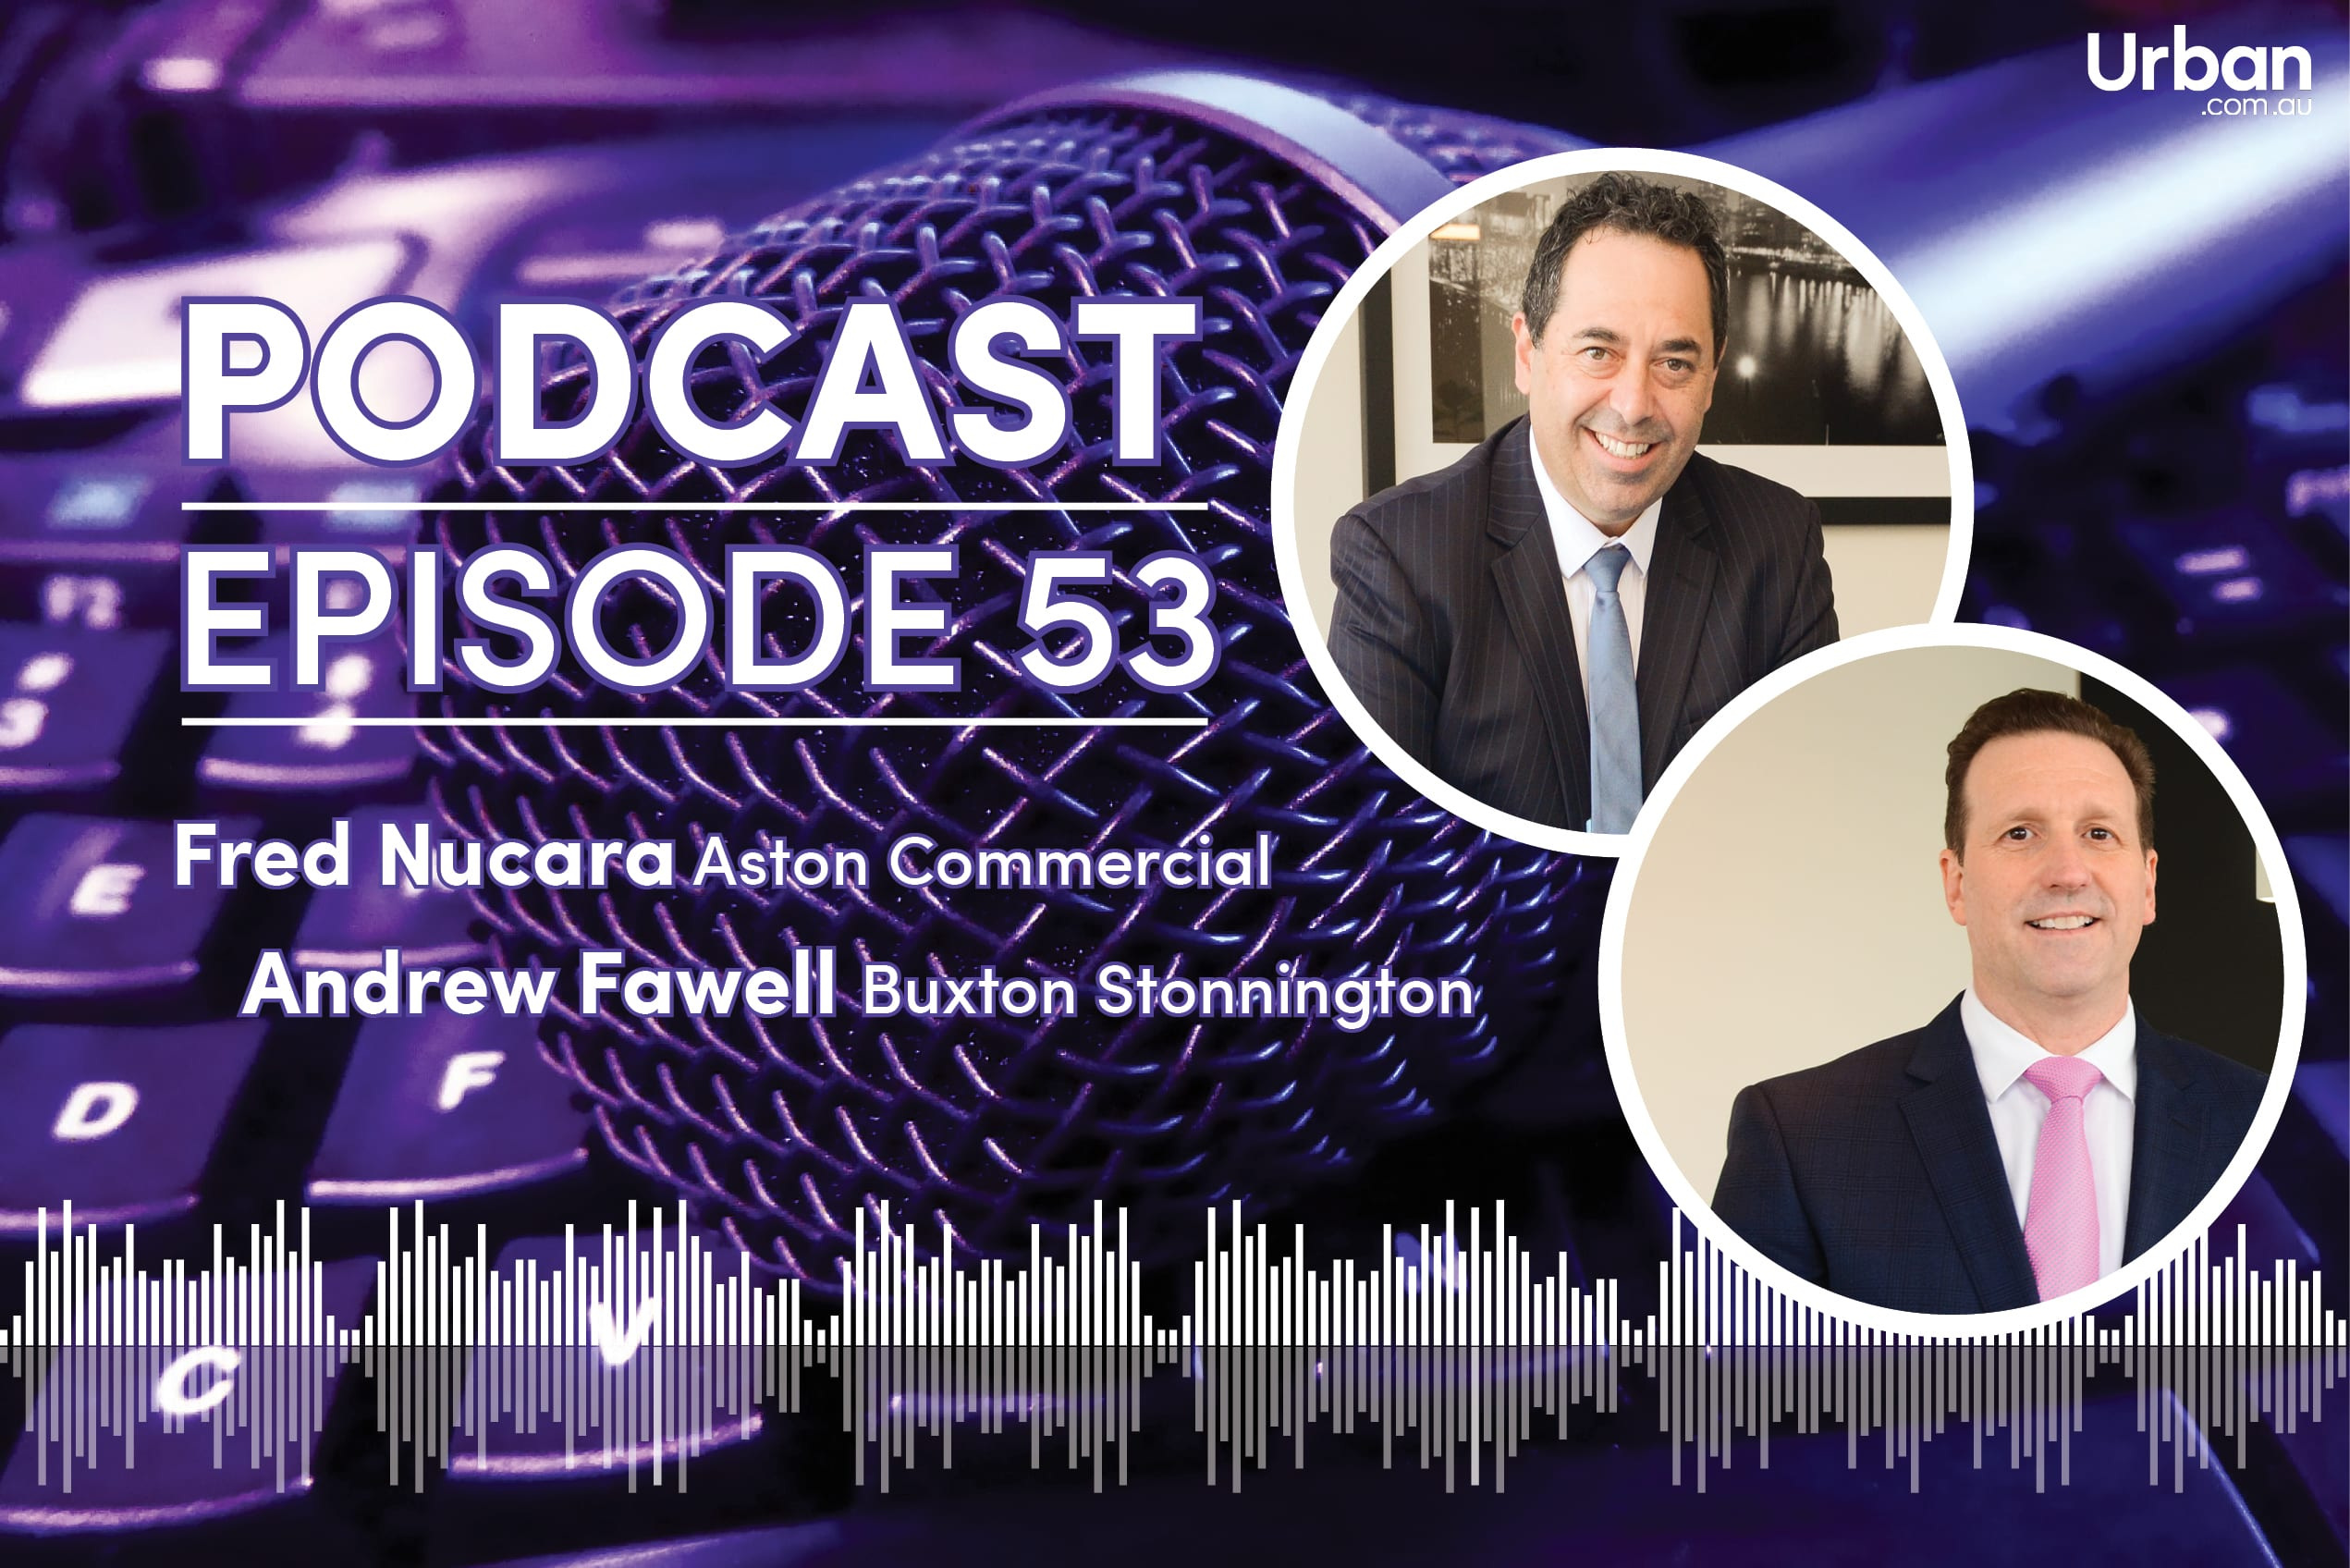 Podcast - Episode 53 - Fred Nucara (Aston Commercial) and Andrew Fawell (Buxton Stonnington)